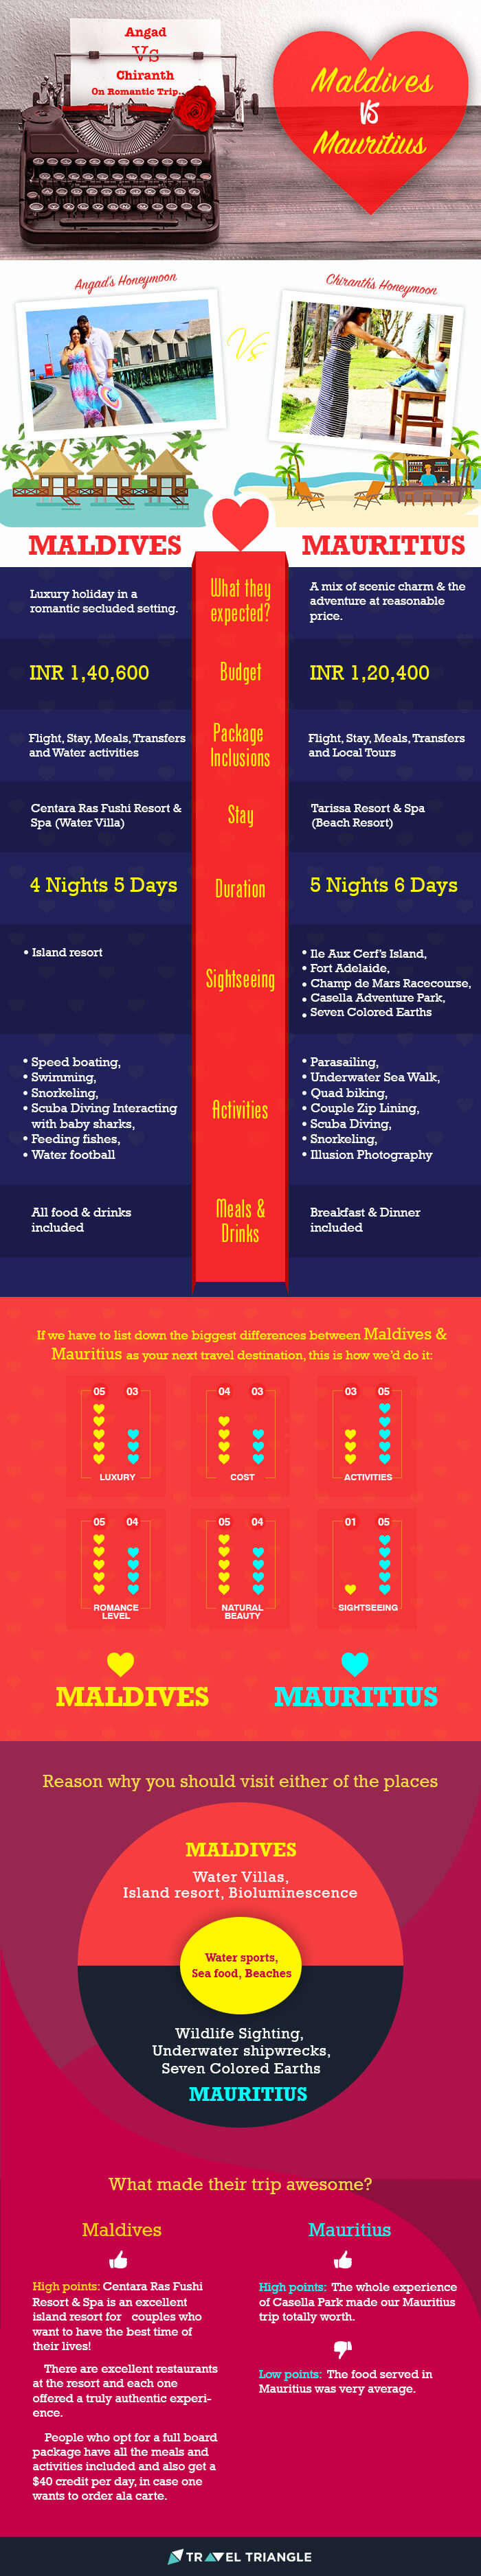 Maldives vs Mauritius infographic to help you pick the perfect destination for your holiday